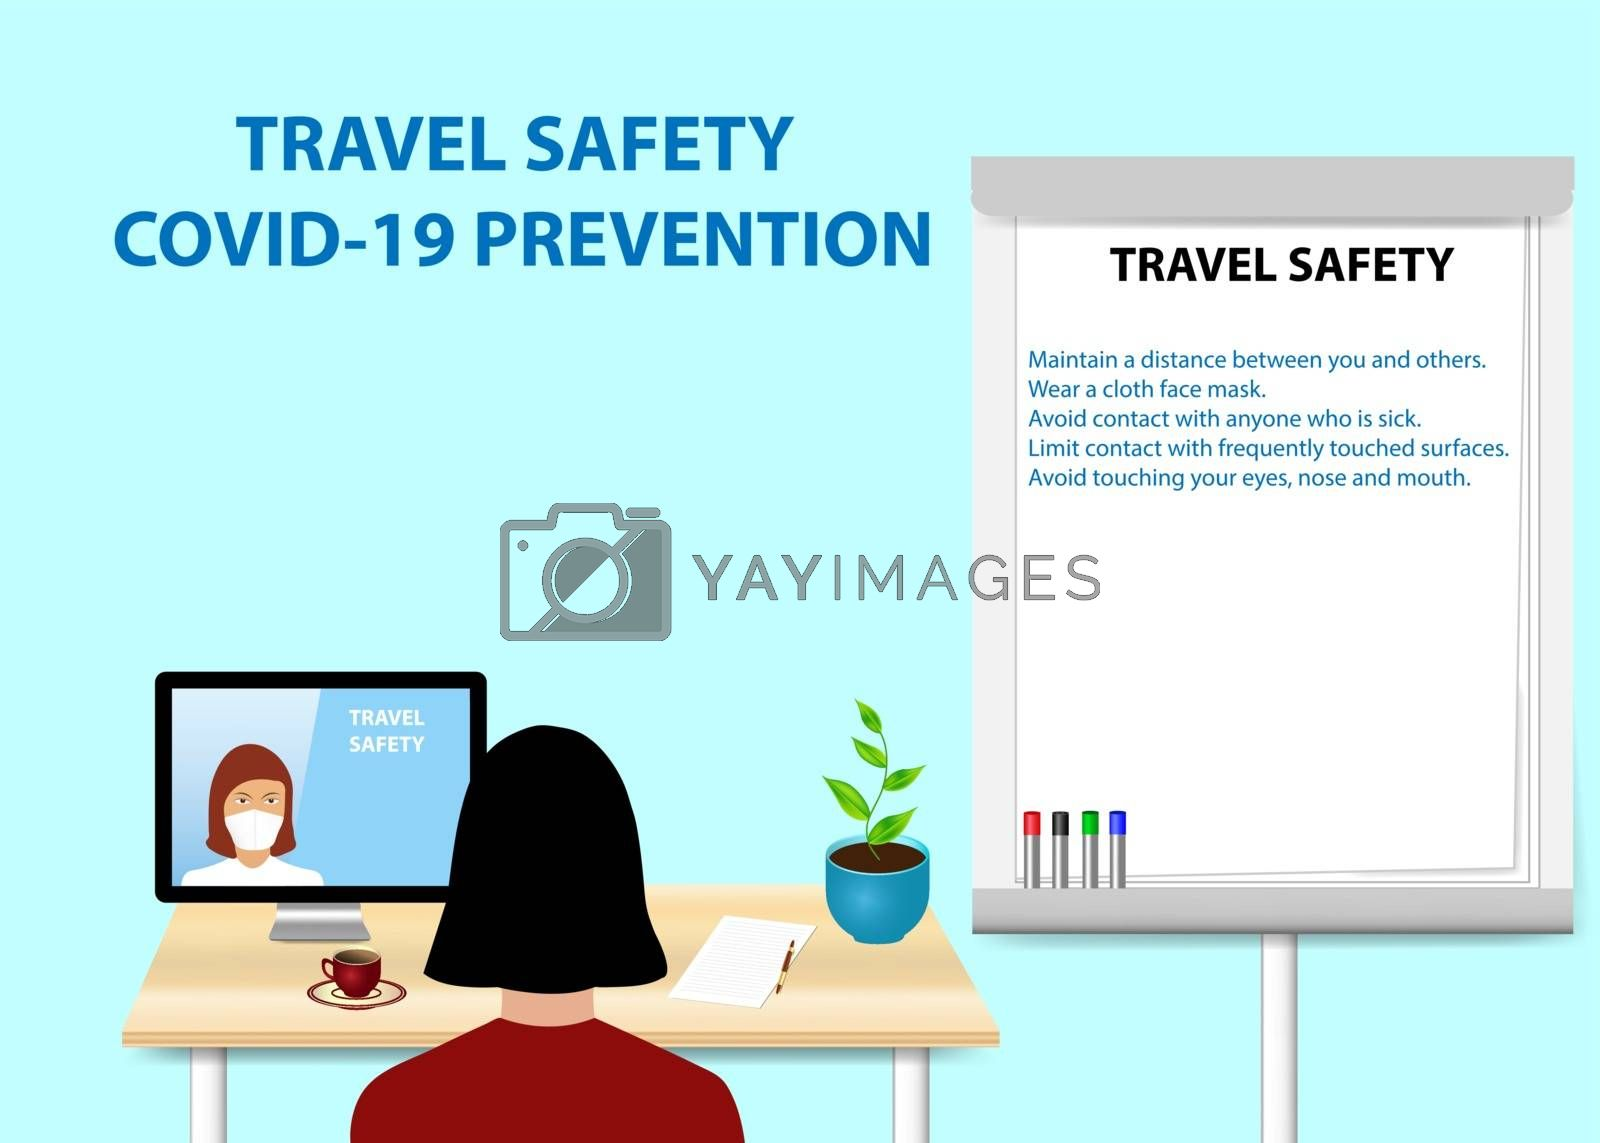 Woman is educating in Travel Safety Prevetion of Covid-19 by a woman communicating with her from a PC monitor. Description of Travel Safety is written on the flipchart standing next to her.